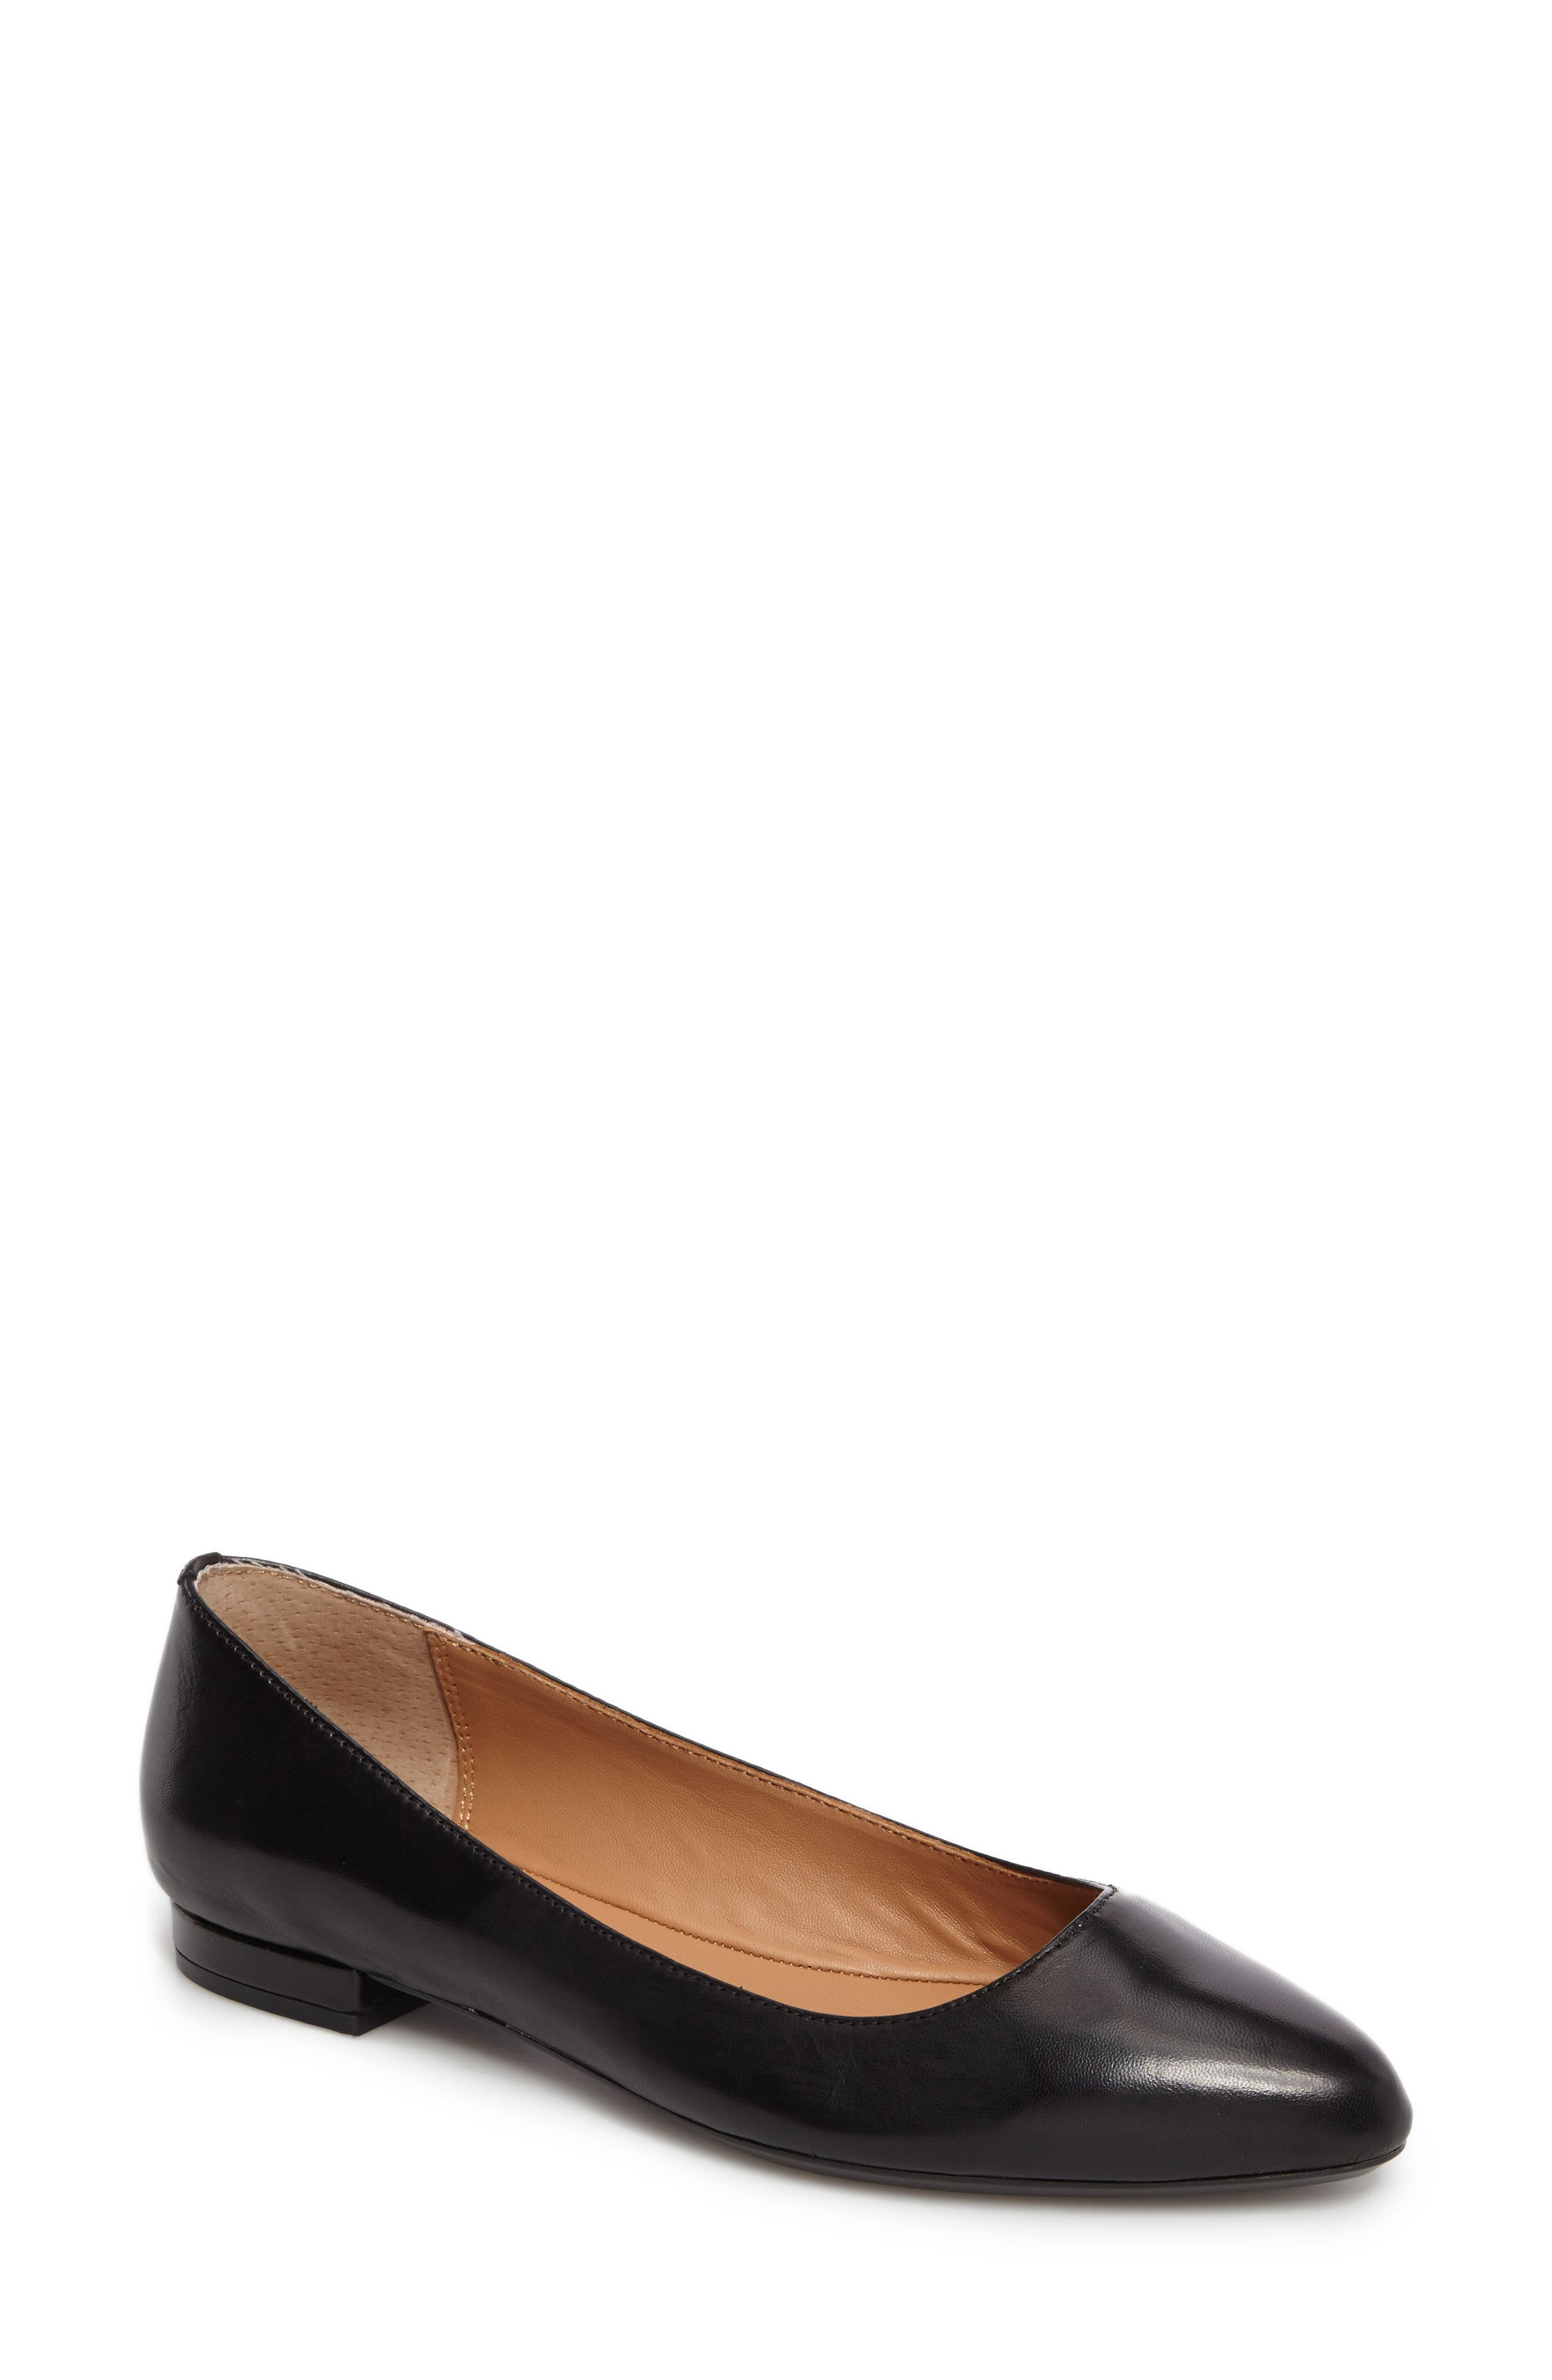 Gredel Flat,                         Main,                         color, Black Leather